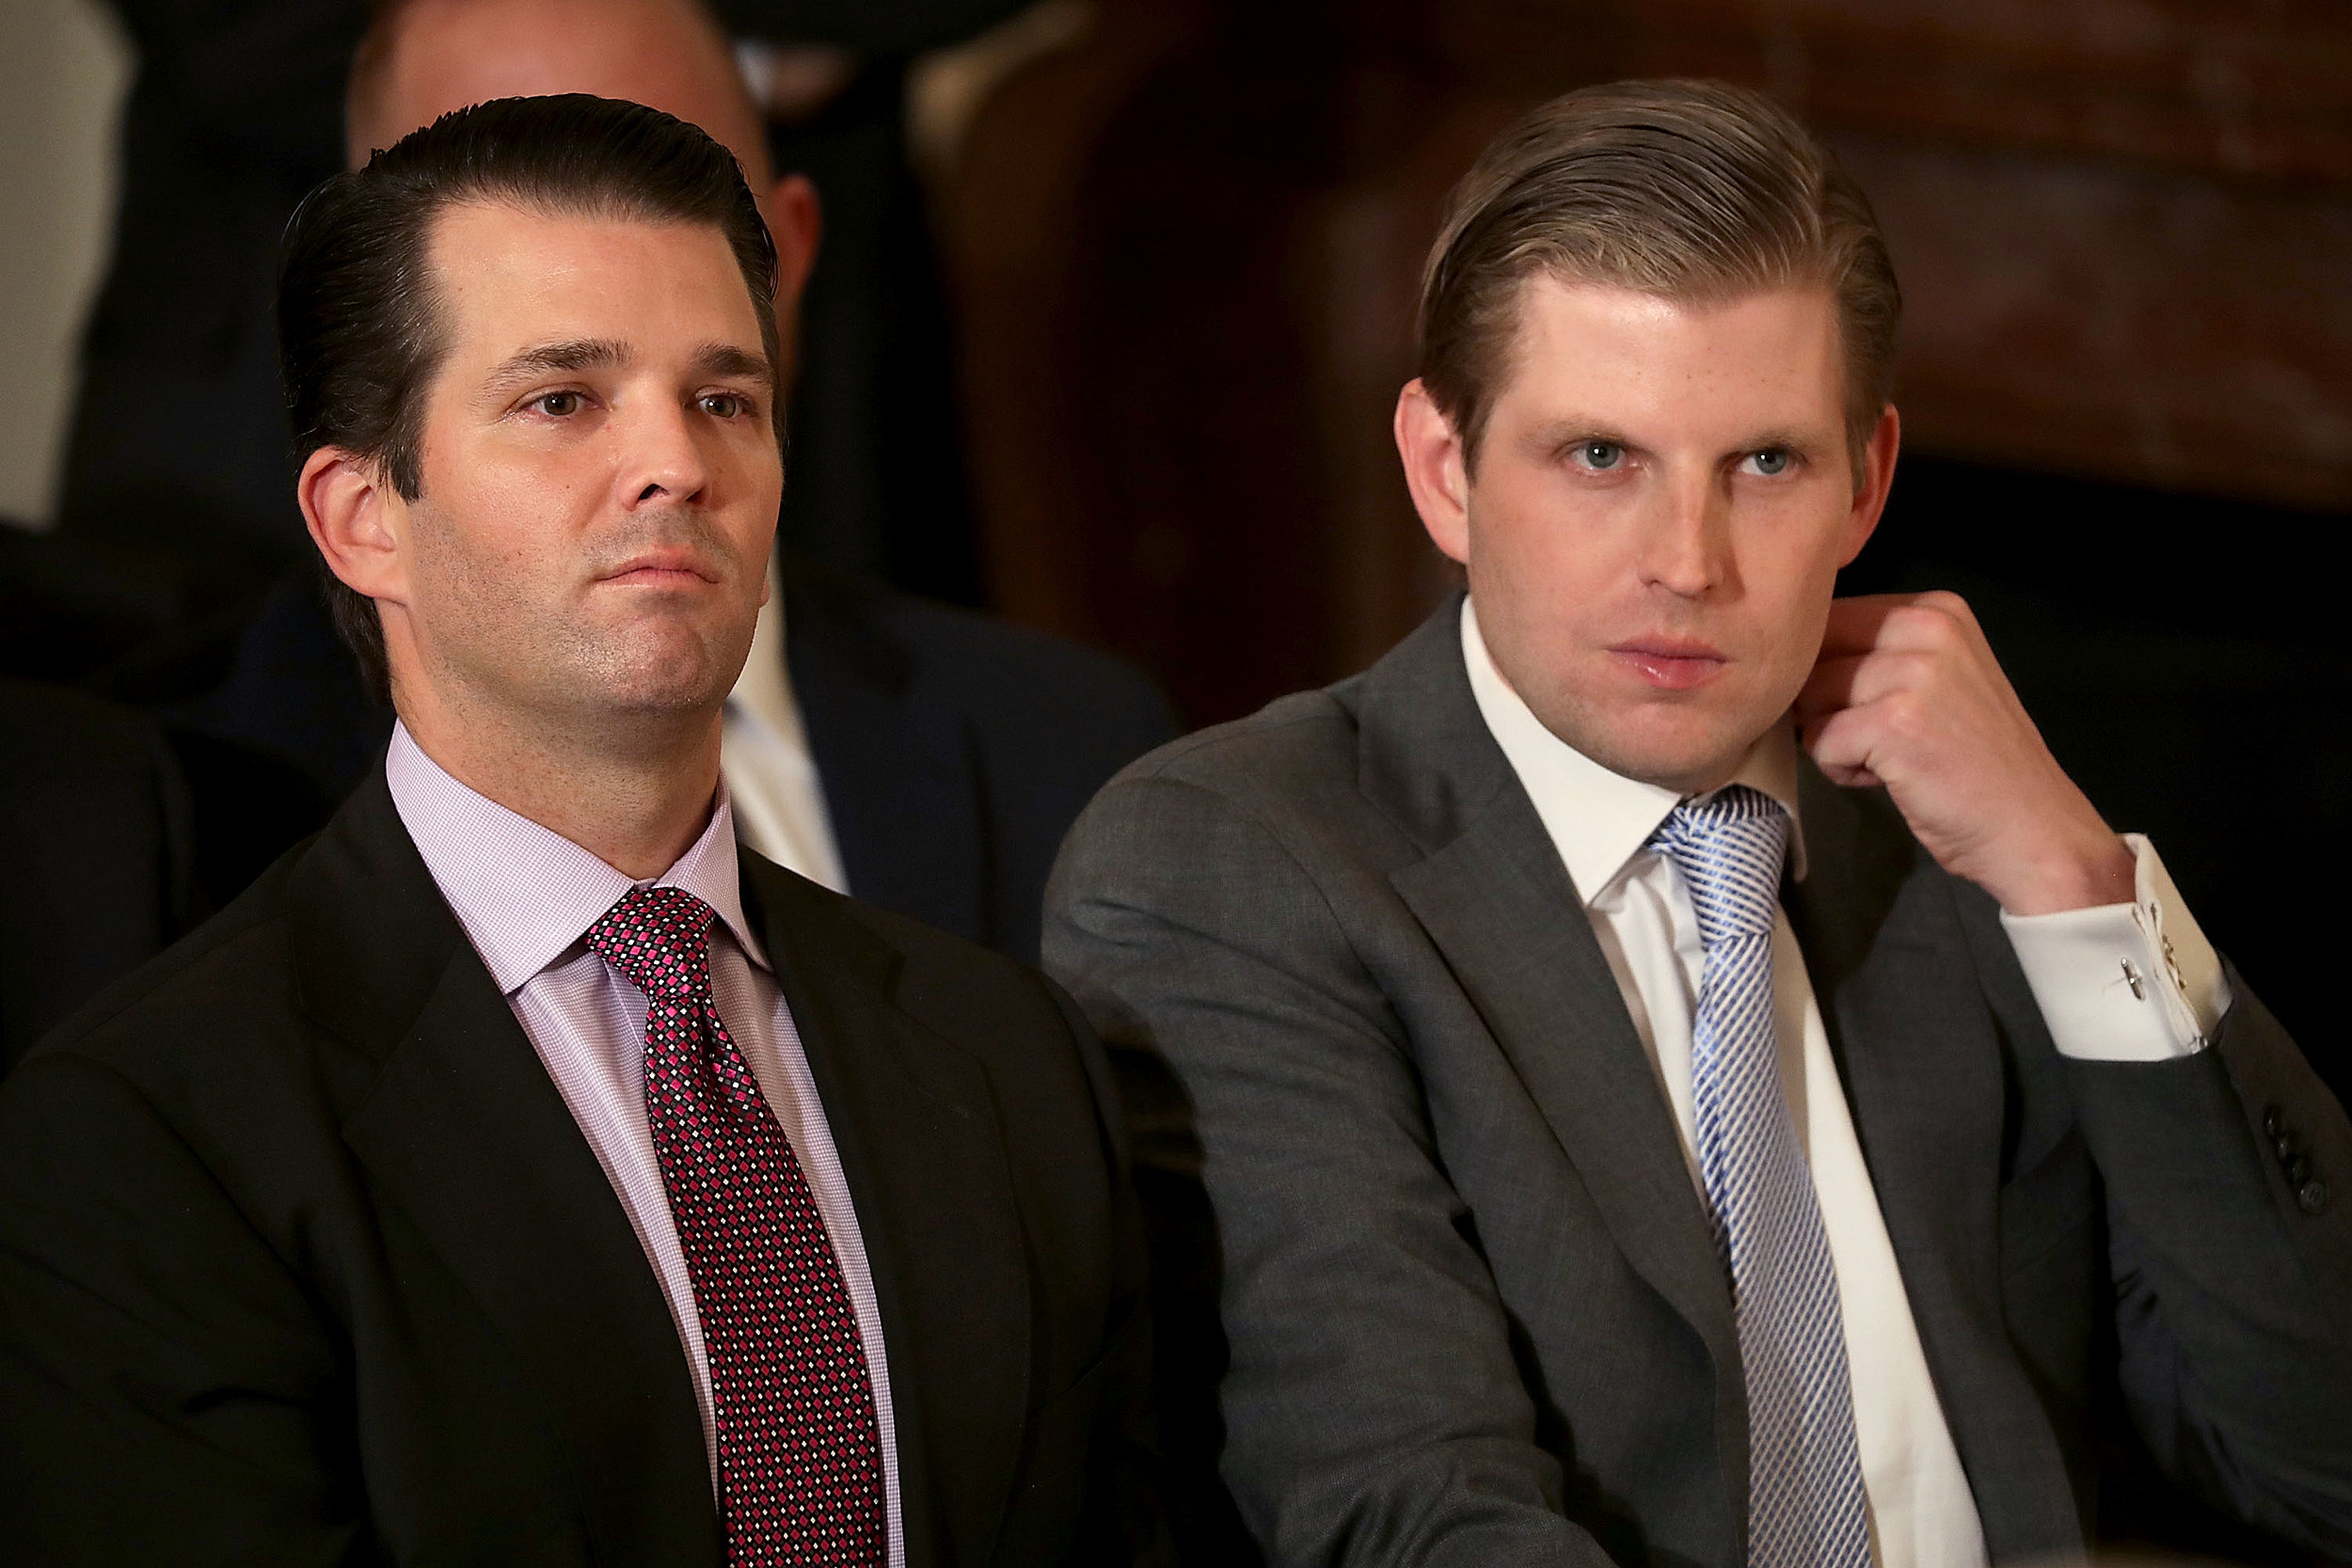 Eighth Person to Meet Trump Jr. Identified As Employee of Russian Company